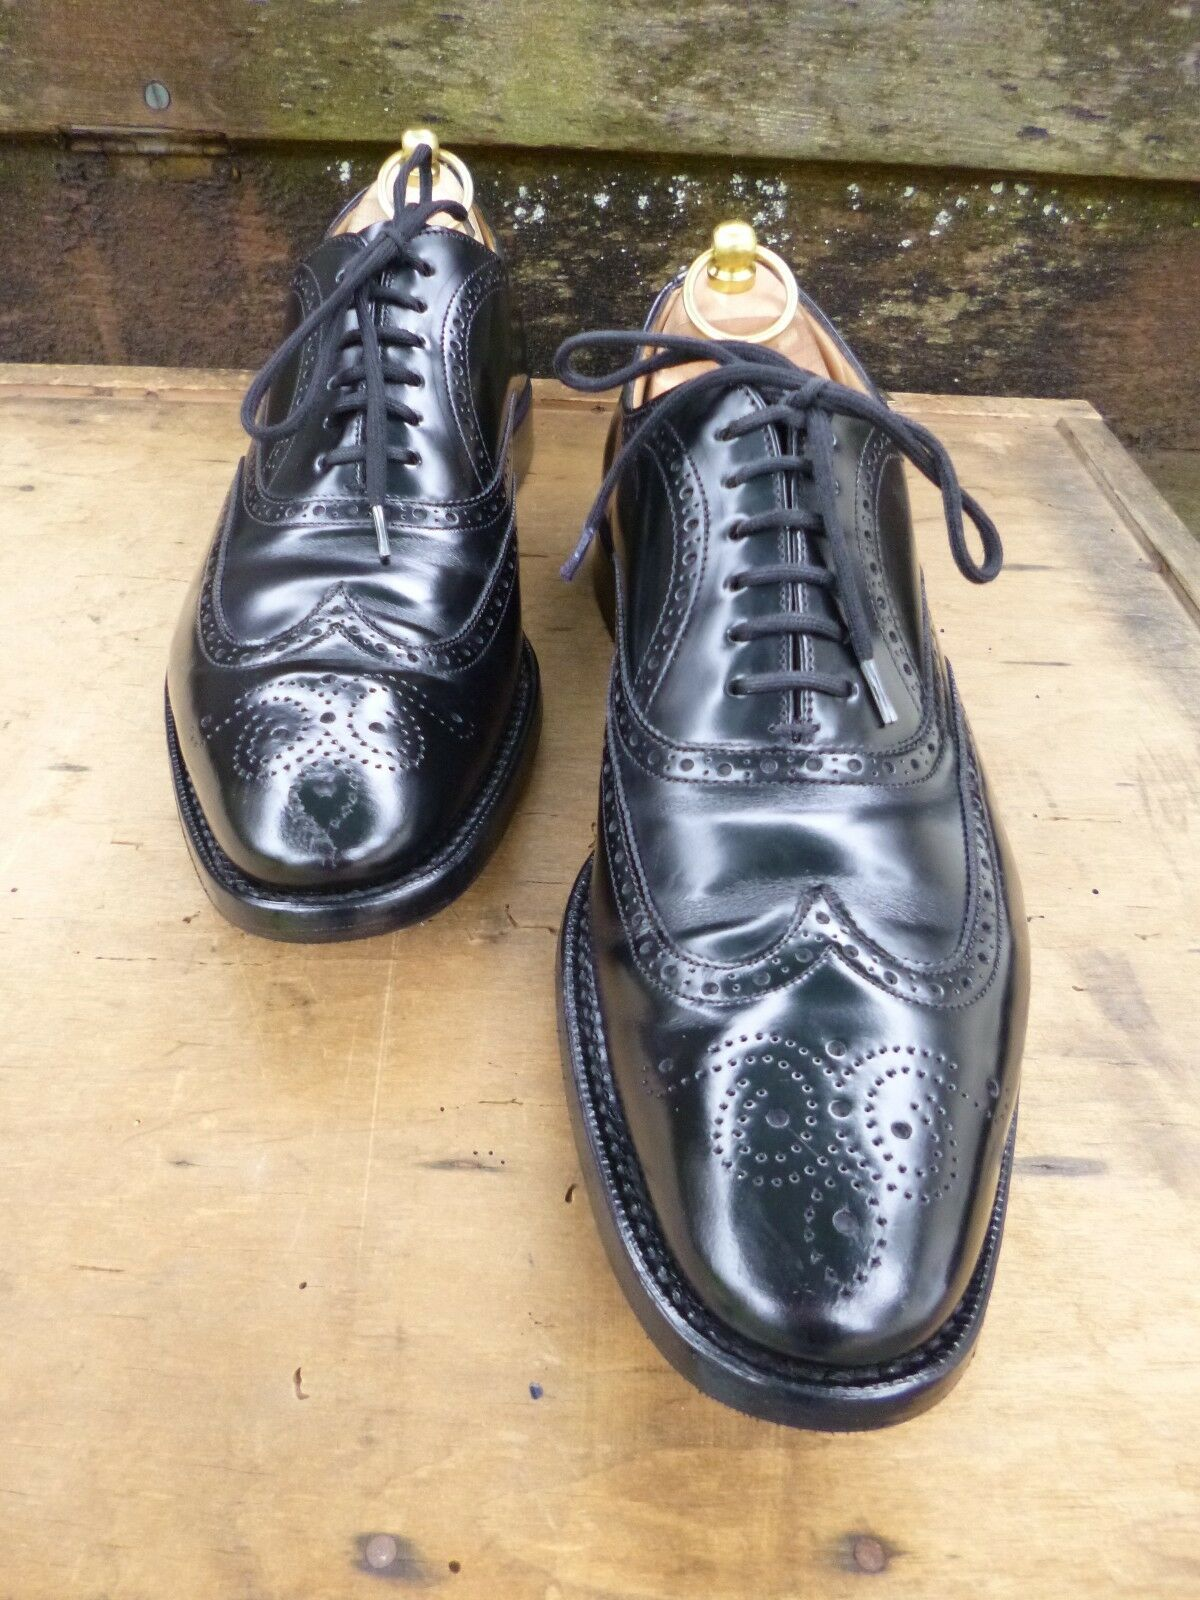 CHURCH OXFORD BROGUES - BLBCK – UK 6.5 – NEW YORK - EXCELLENT CONDITION